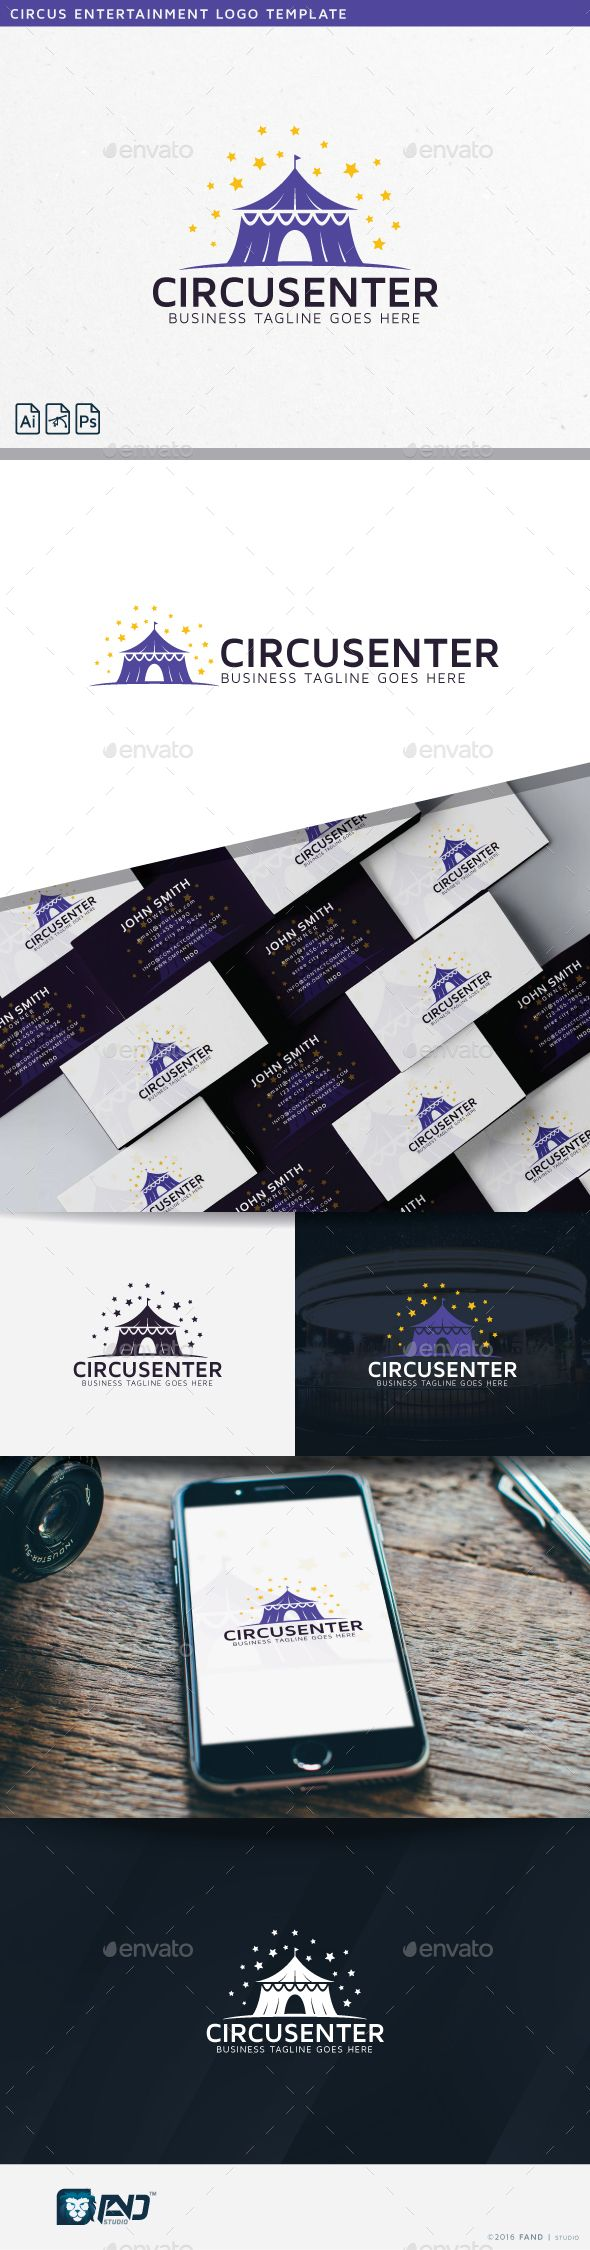 Circus Entertainment — Photoshop PSD #professional #stars • Available here → https://graphicriver.net/item/circus-entertainment/14810289?ref=pxcr